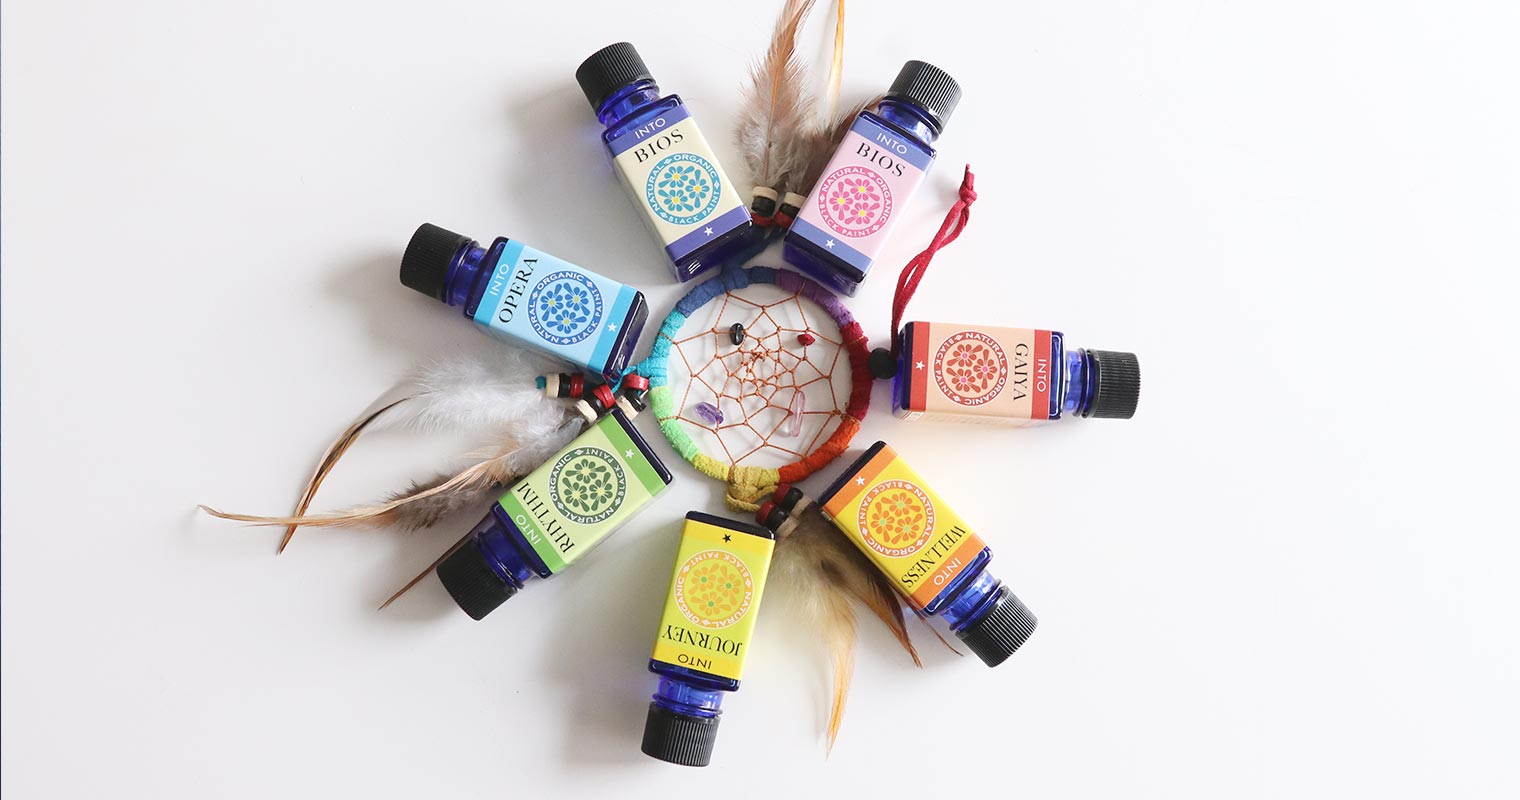 Aroma oils can aid in keeping you calm, helping you get through stressful situations, or ground you.